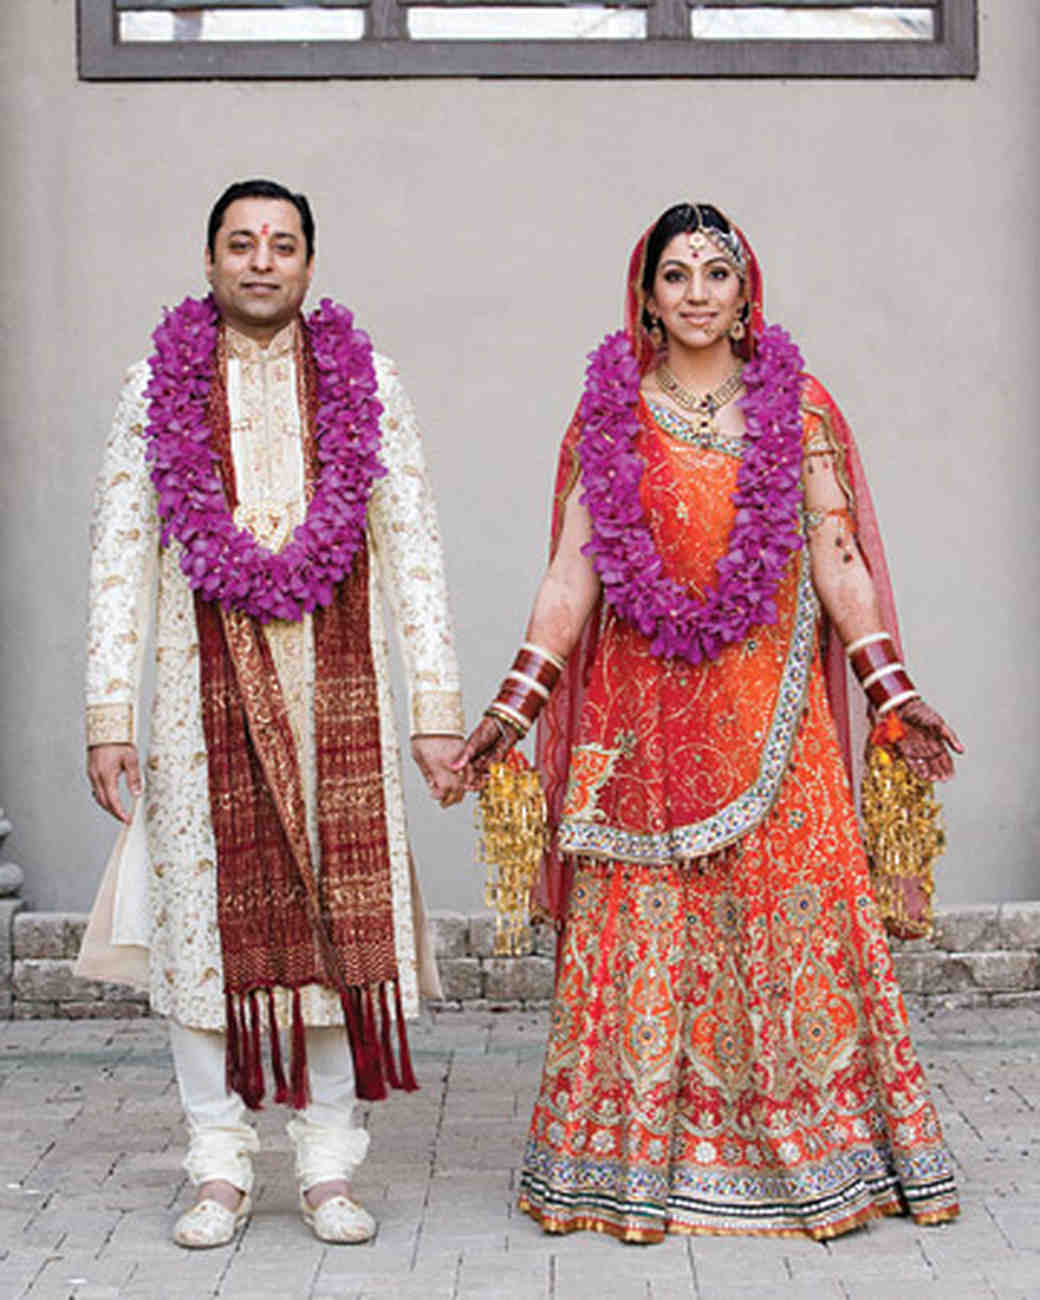 A Vibrant Traditional Hindu Destination Wedding in Canada